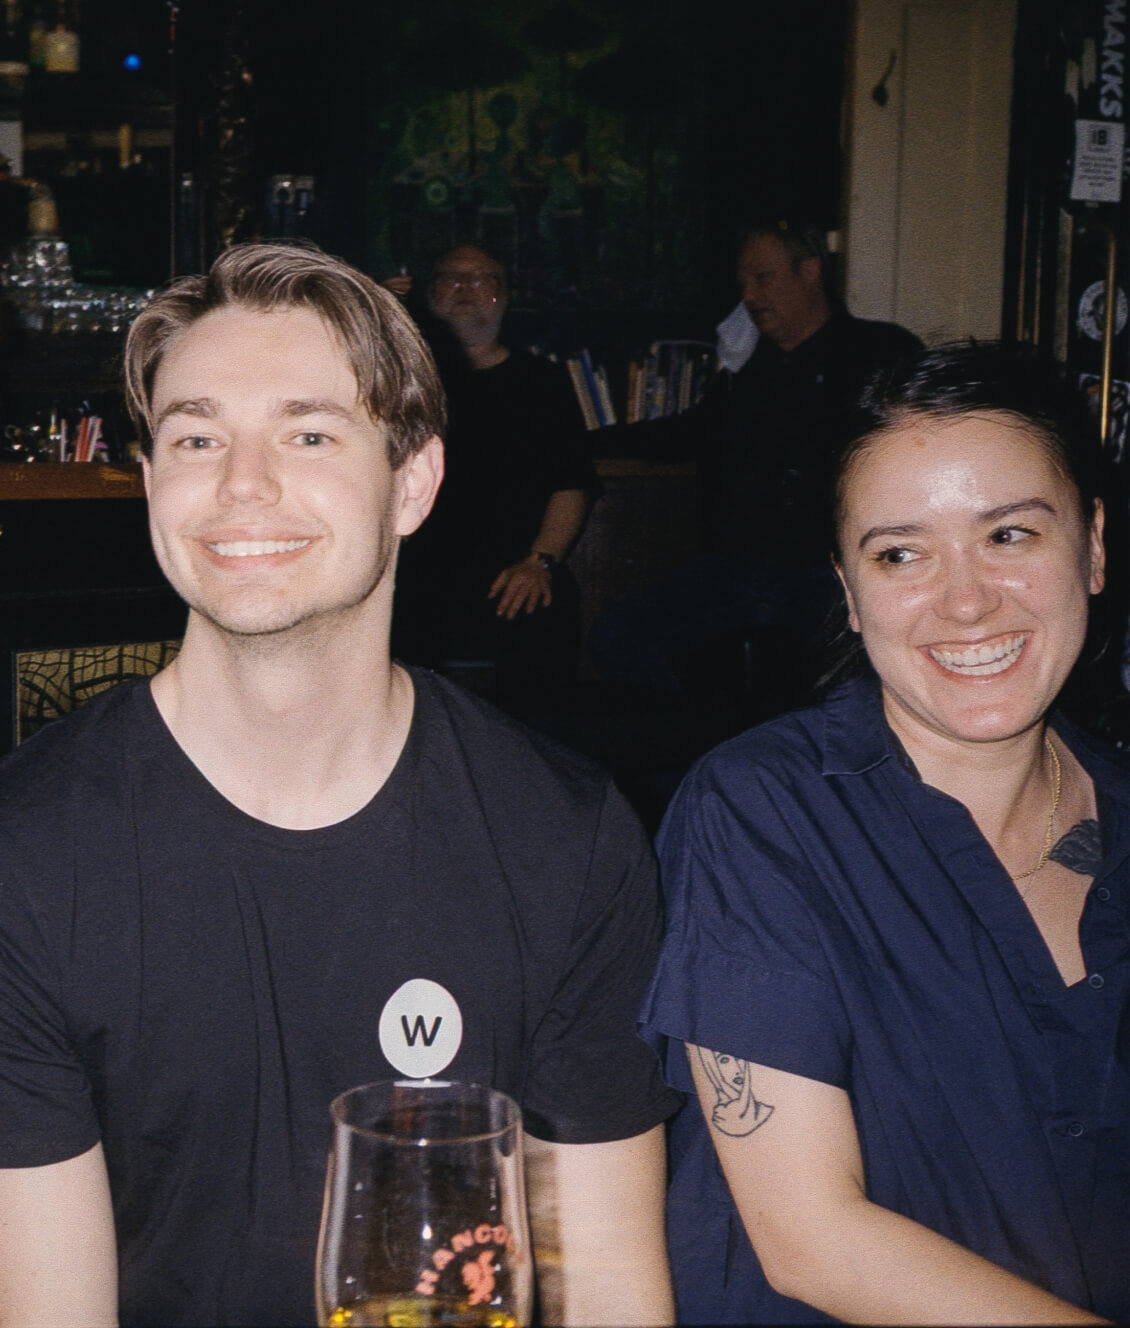 Two Worksome team members (Frederik and Casey) at a bar smiling